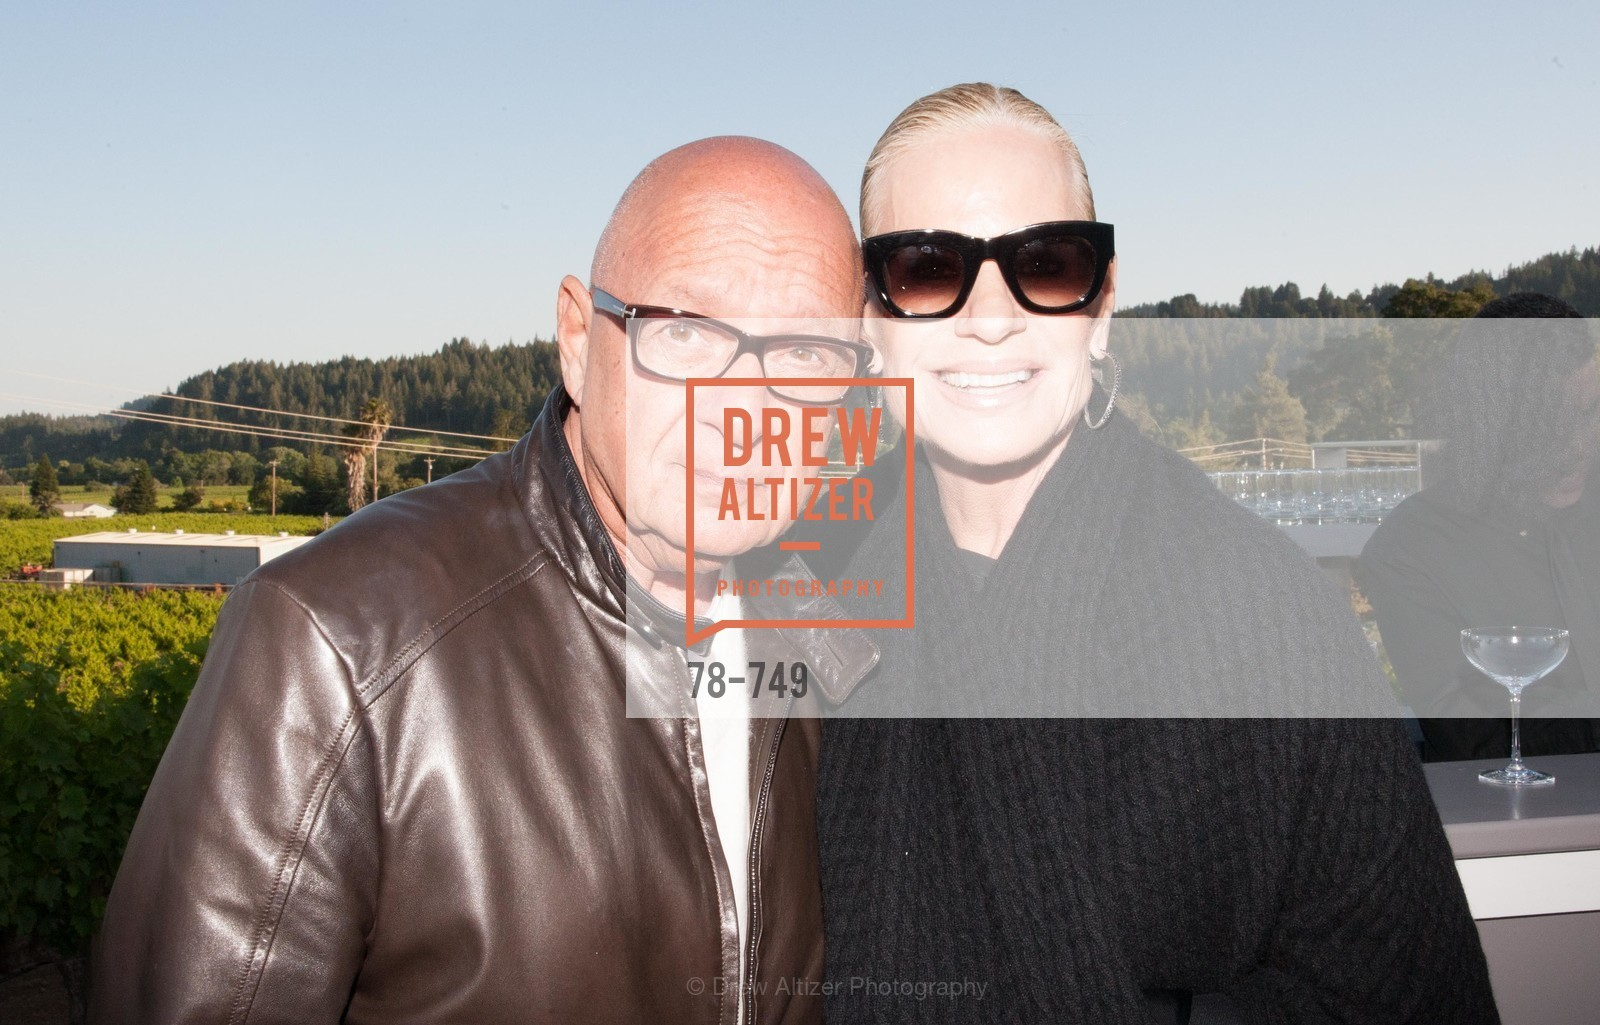 Paul Geliebter, Susan Geliebter, PETER COPPING Meets and Greets OSCAR DELA RENTA Clients and Associates at NEIMAN MARCUS, US, May 22nd, 2015,Drew Altizer, Drew Altizer Photography, full-service agency, private events, San Francisco photographer, photographer california